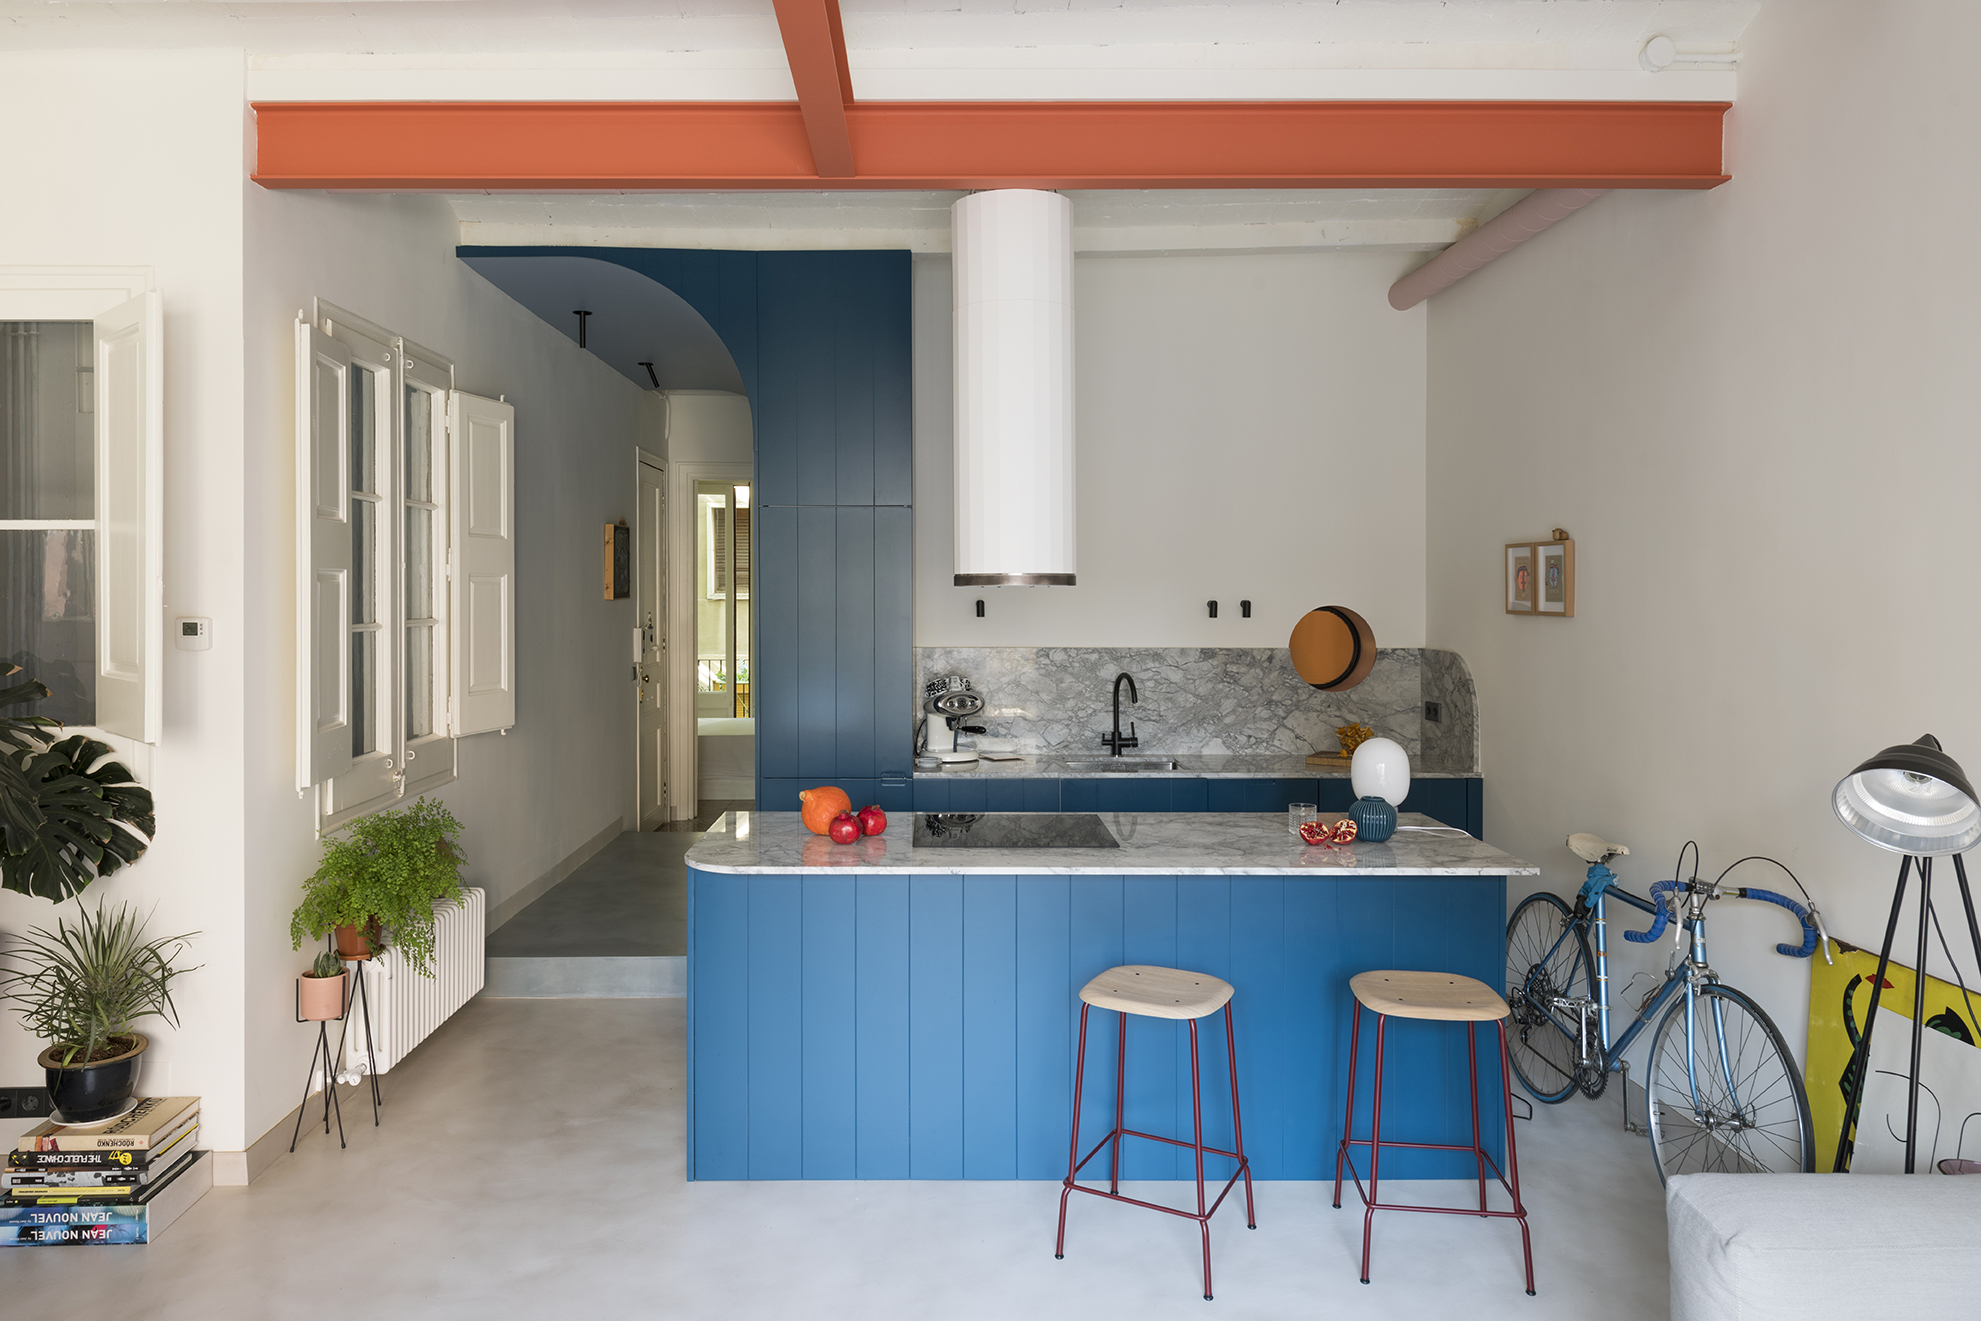 This Barcelona Apartment Is a Colorful Cabinet of Curiosities